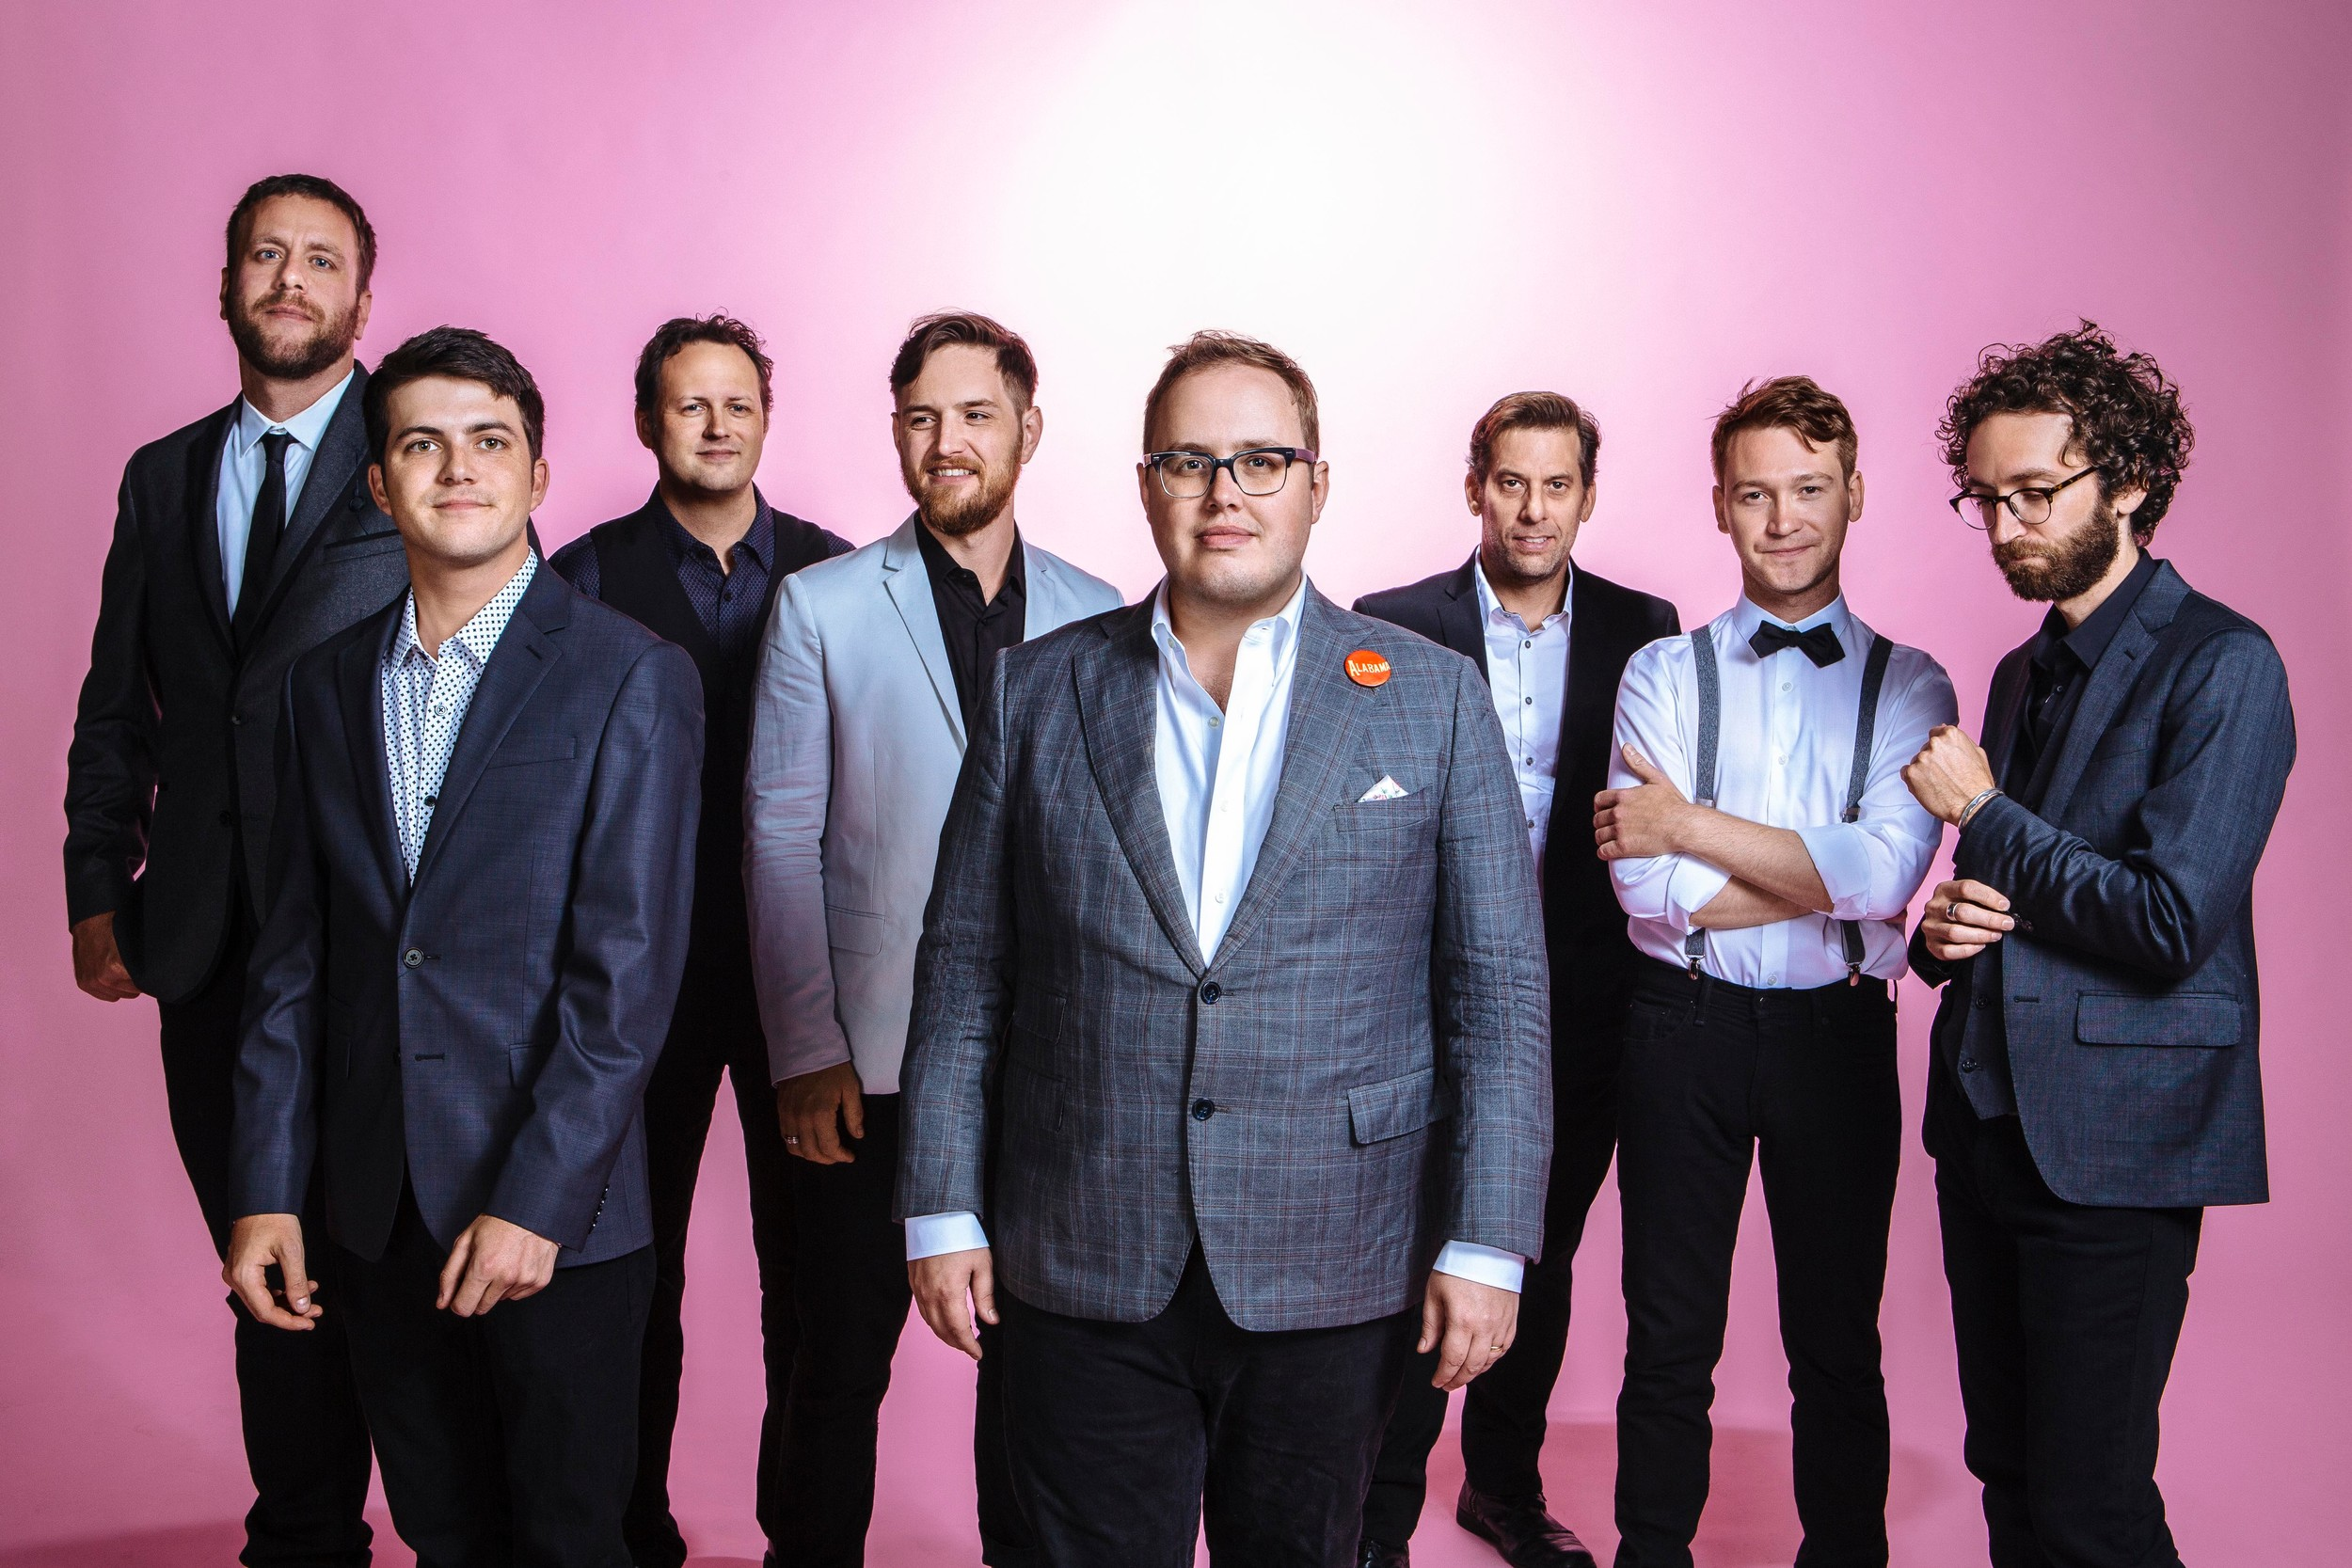 St. Paul and the Broken Bones are coming to the H-E-B Center, Sept. 22.